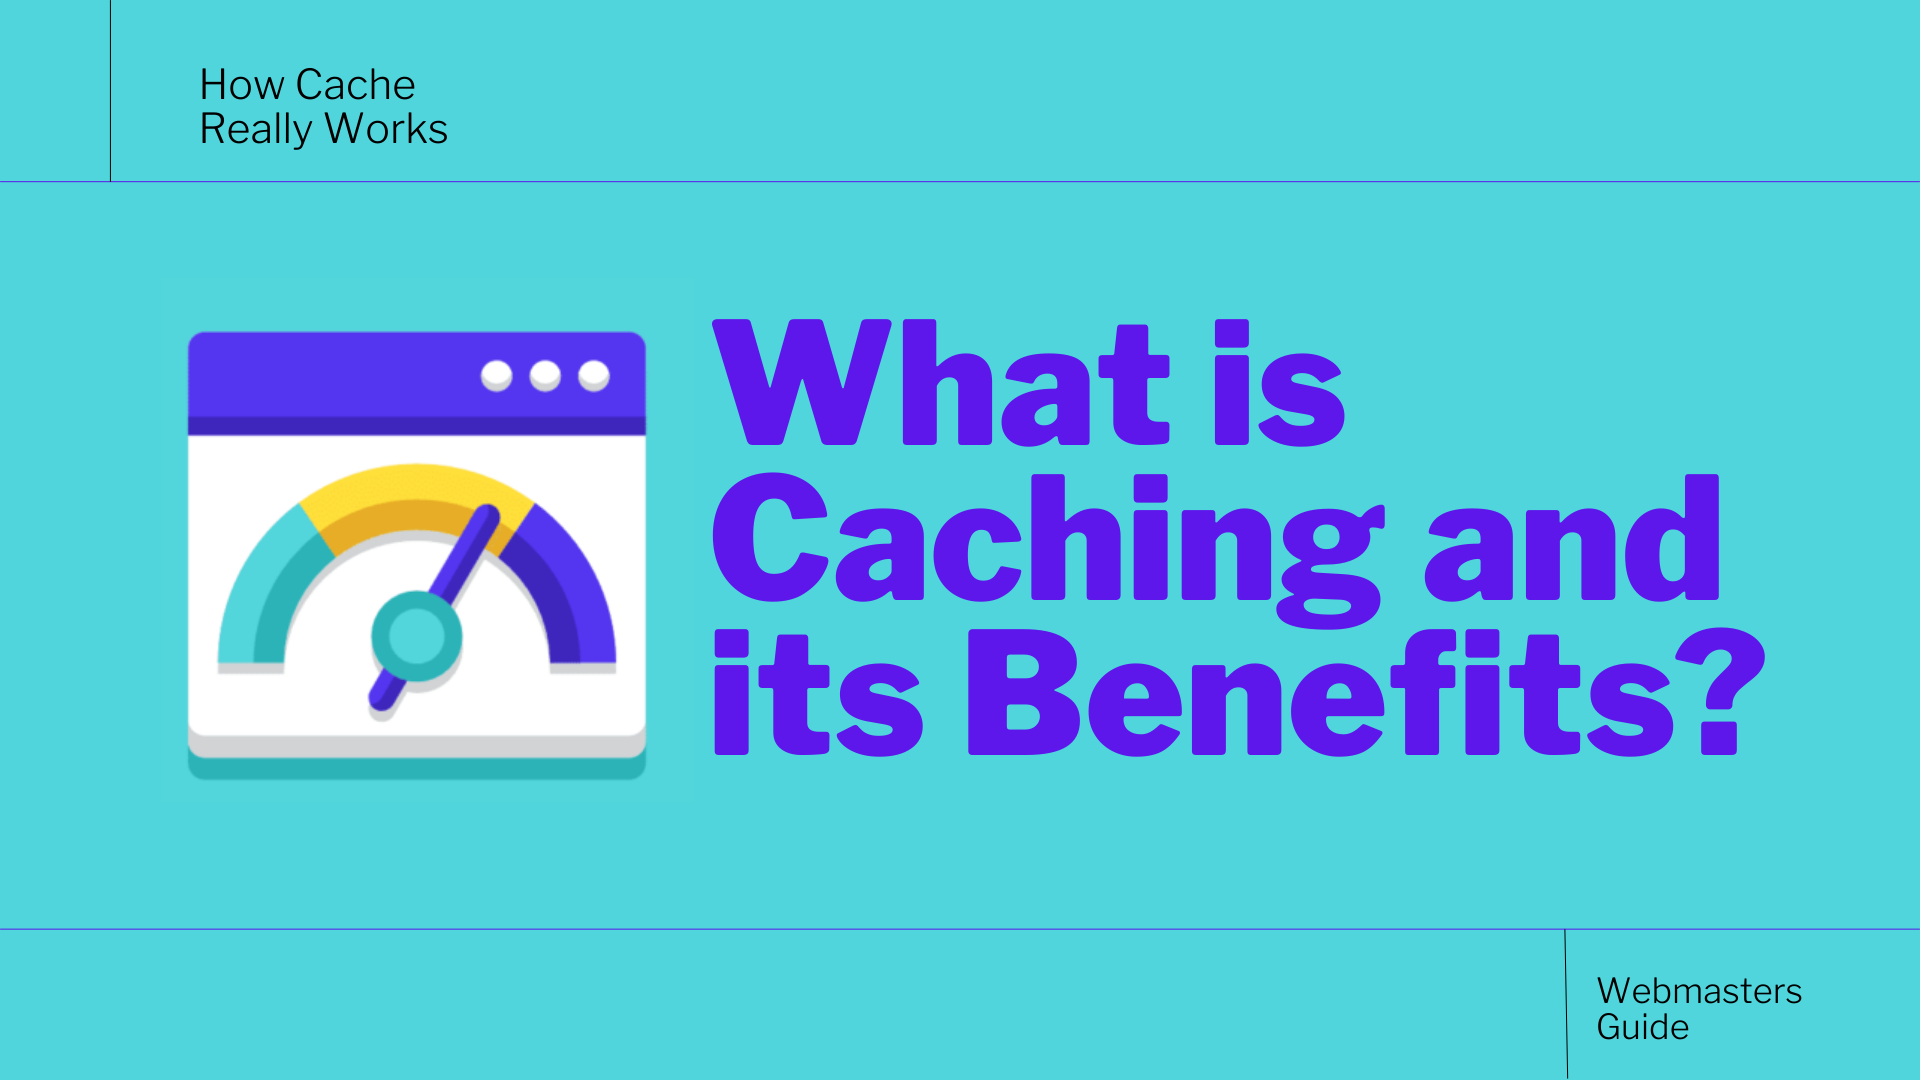 What is Caching?